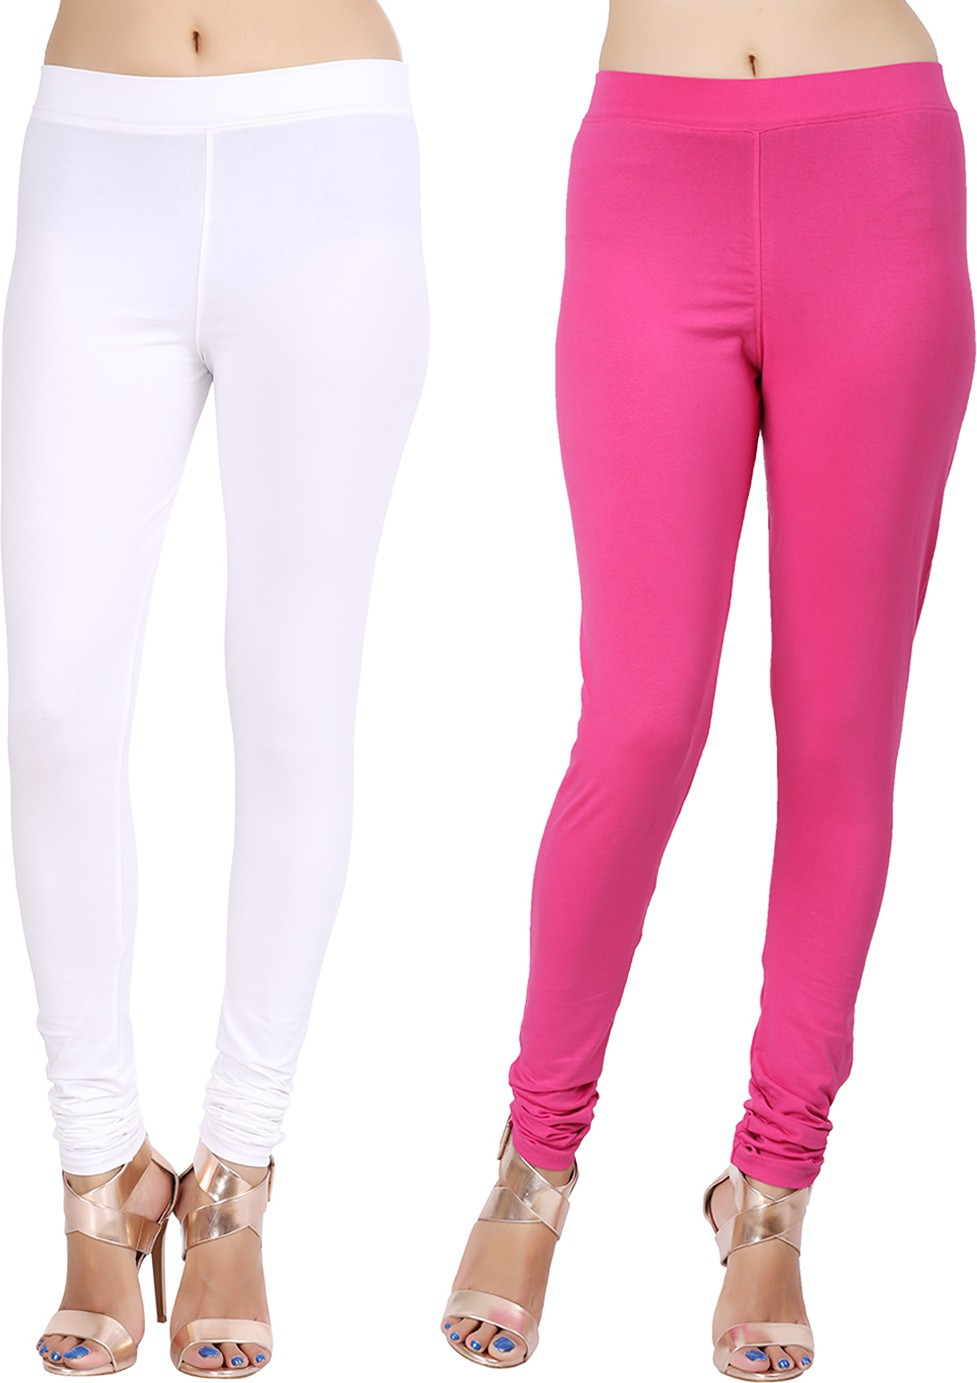 Lula Ms Womens White, Pink Leggings(Pack of 2)